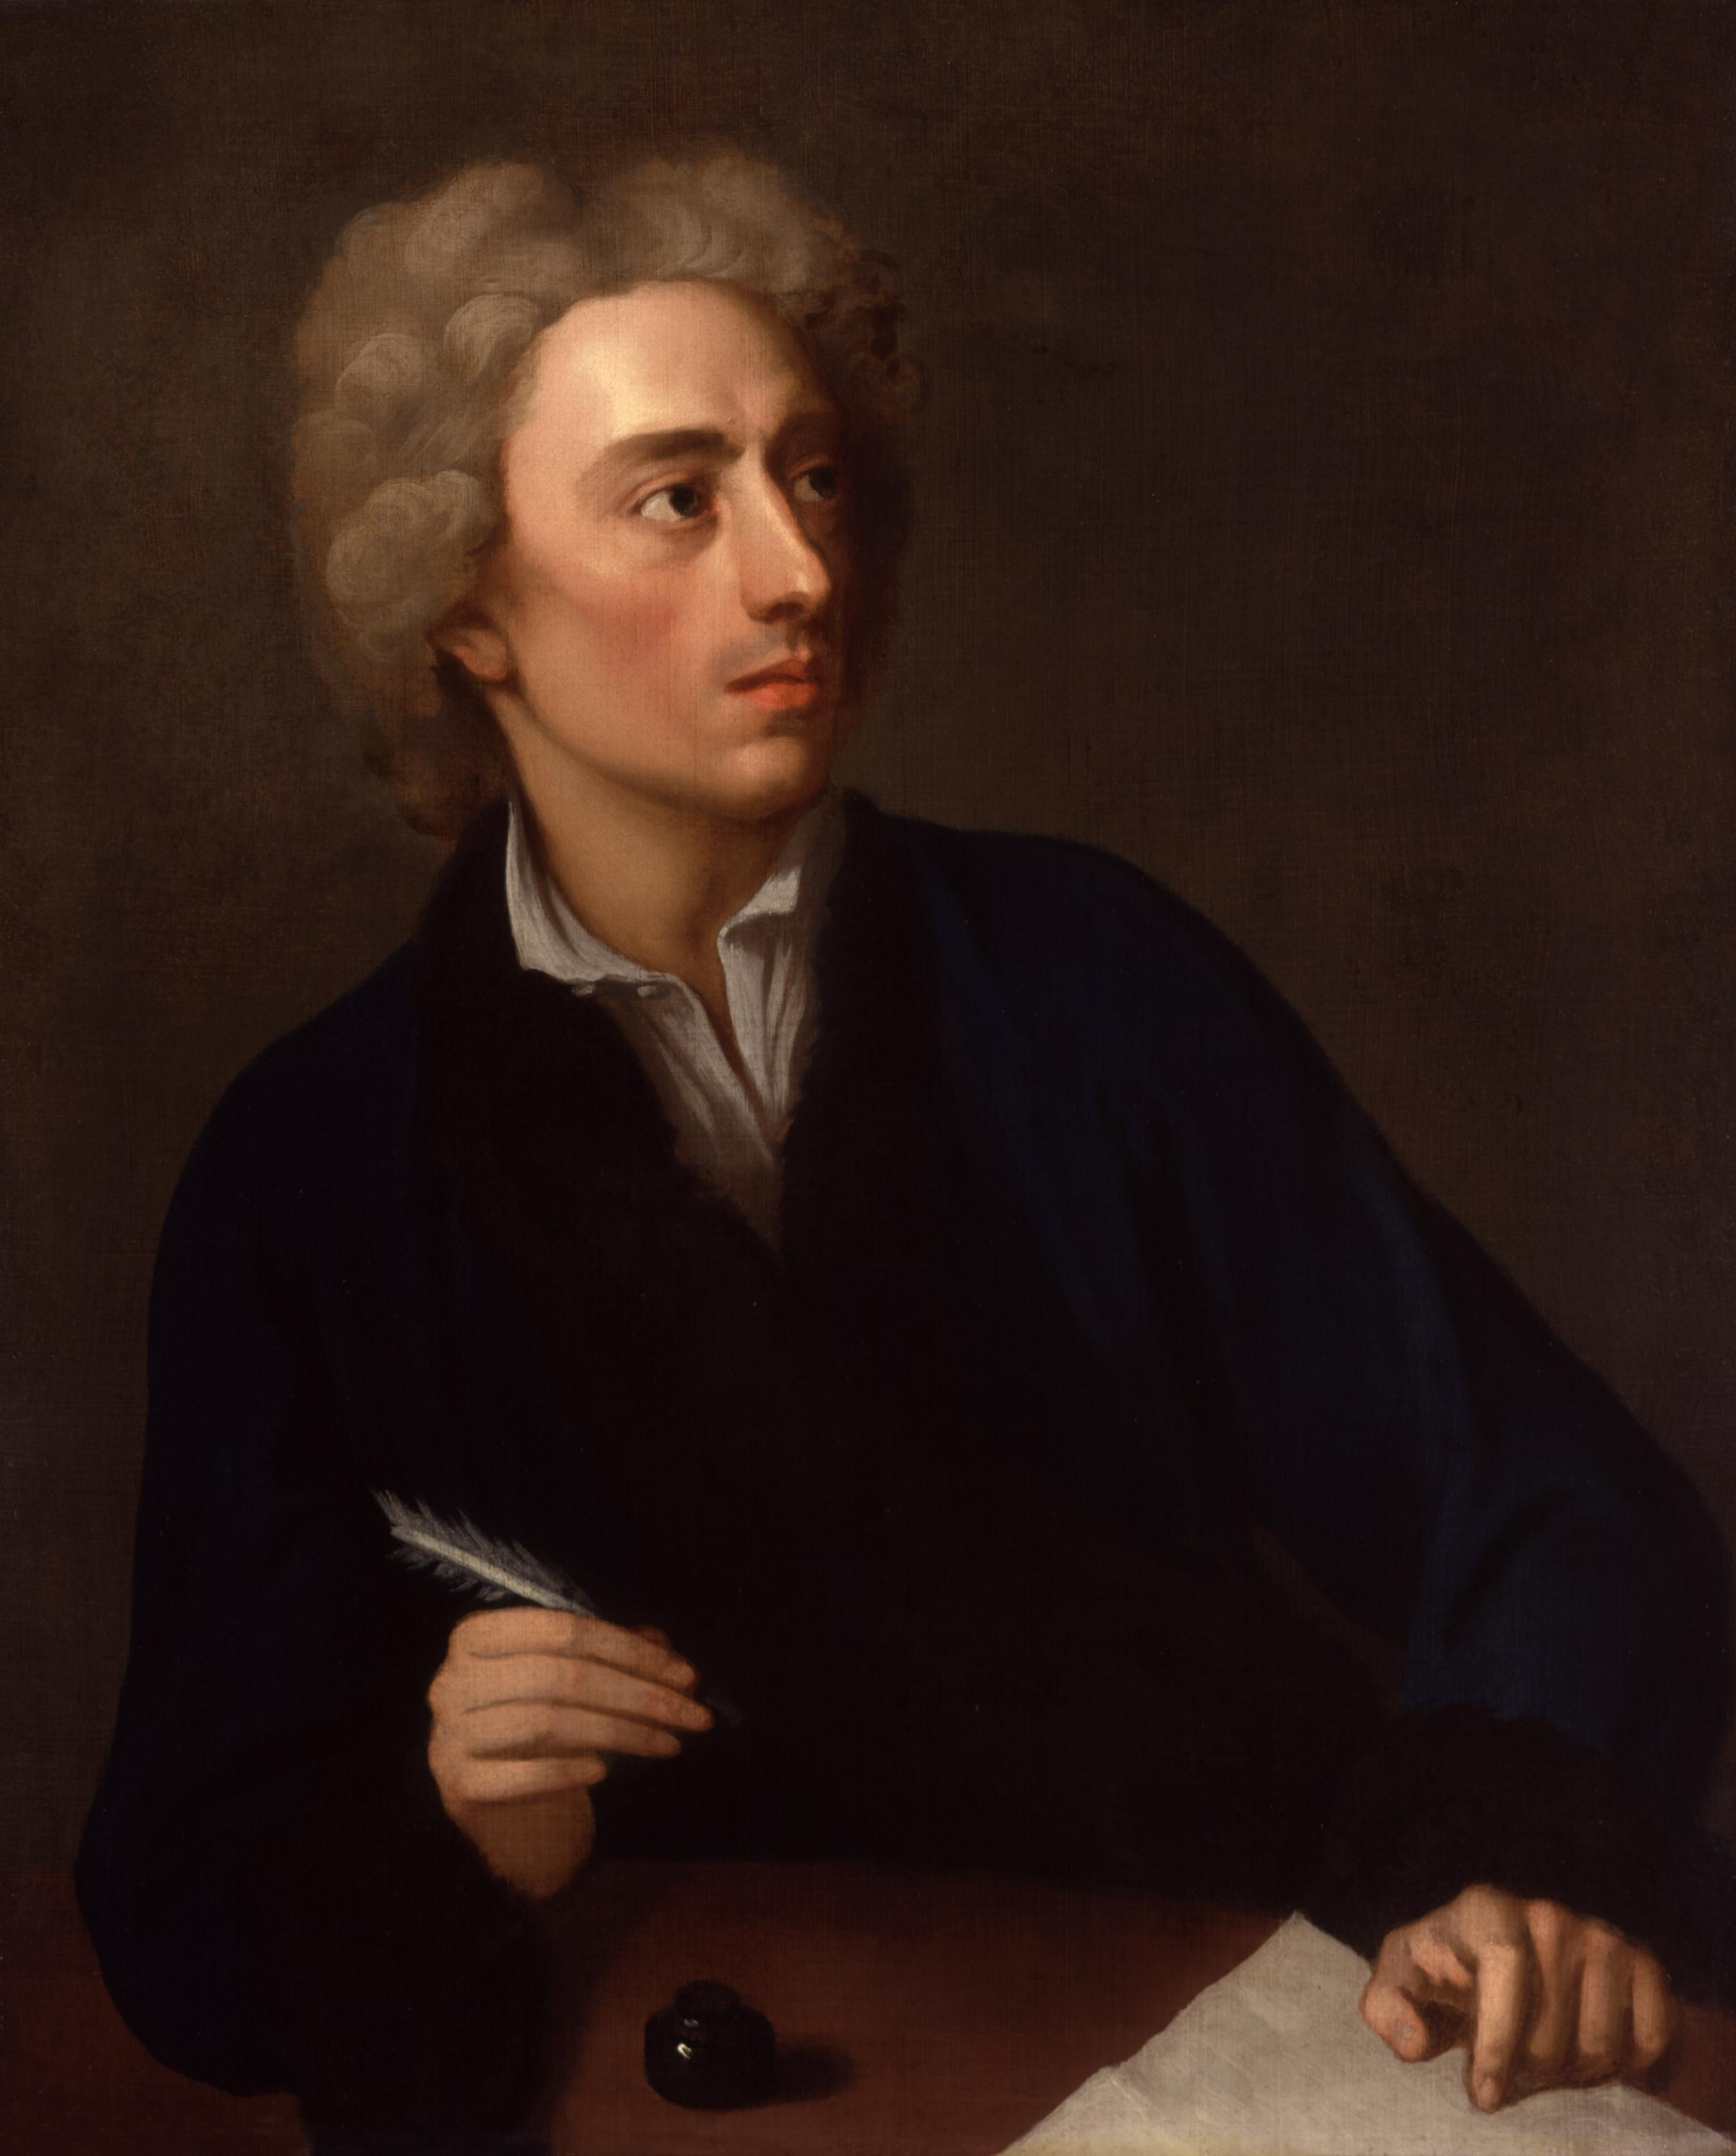 an essay on criticism part i alexander pope library of babel